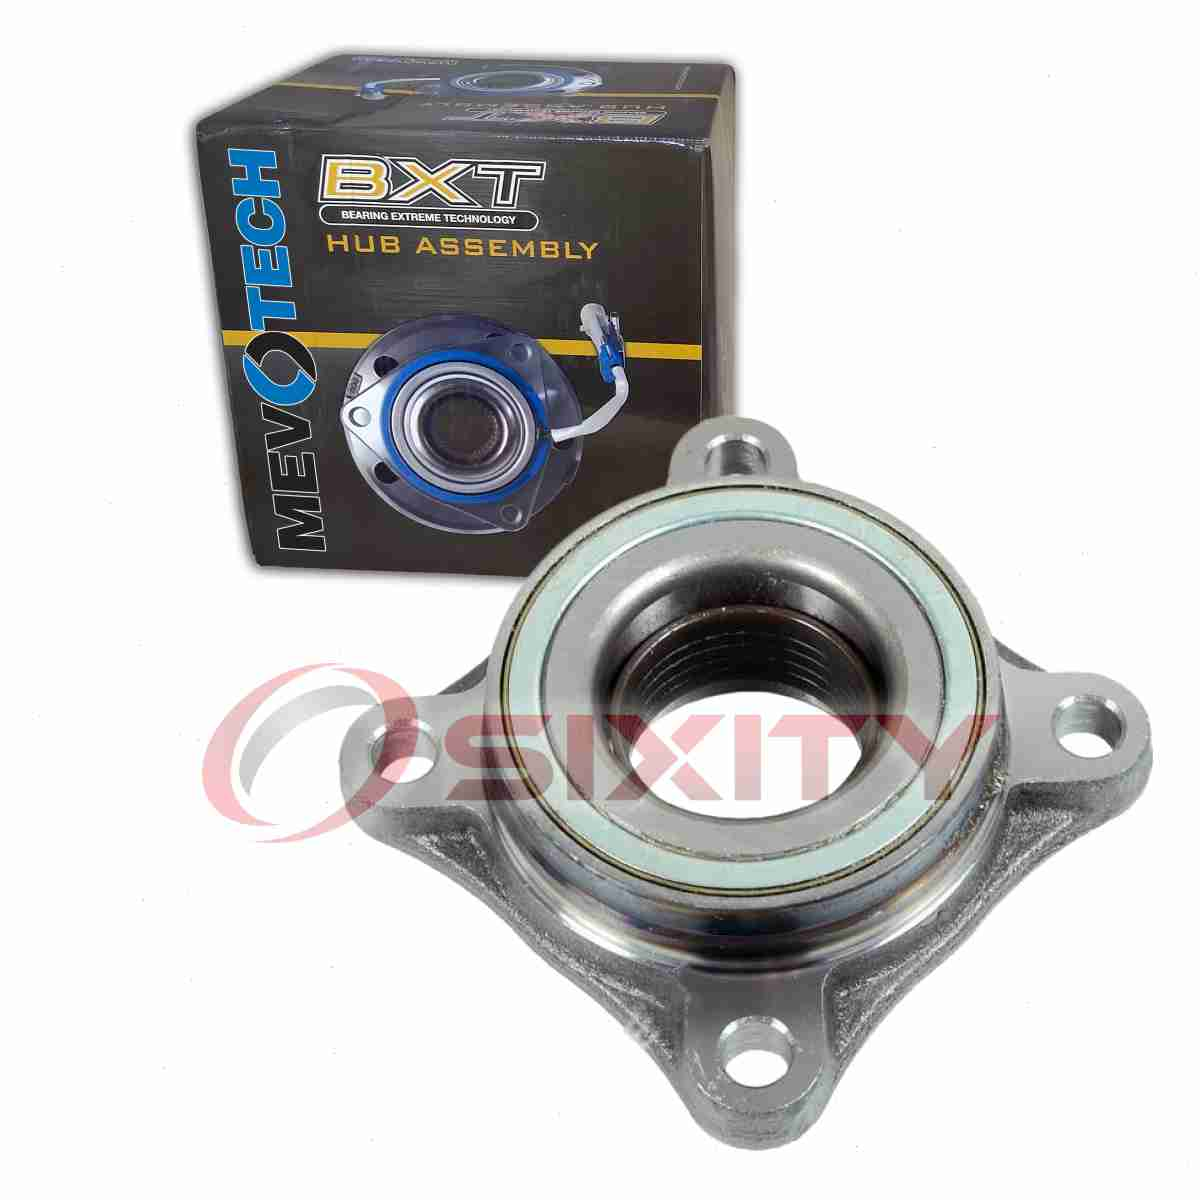 Mevotech BXT Front Wheel Bearing Hub Assembly for 2001-2005 Cadillac DeVille yh